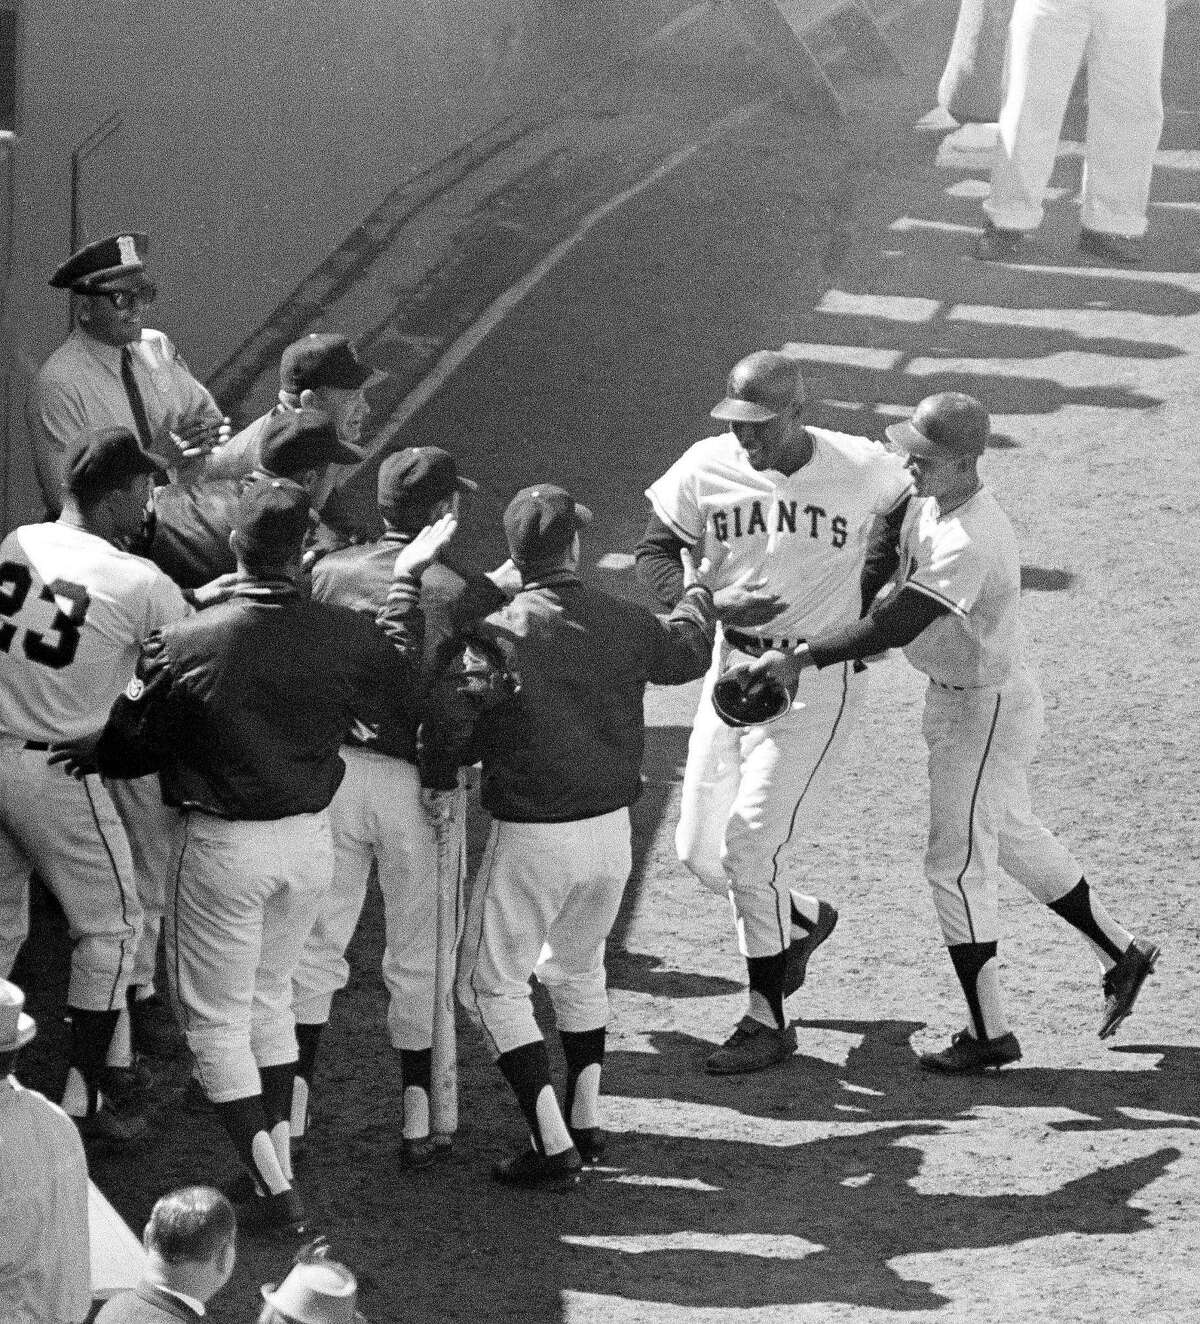 Giants' first baseman Willie McCovey is welcomed by teammates at San Francisco dugout after he drove the ball high over the right field fence in seventh inning, Oct. 5, 1962 in San Francisco and put Giants ahead, 2-0, in second game of World Series in Candlestick Park. Giants shutout the New Yorkers, 2-0. (AP Photo)